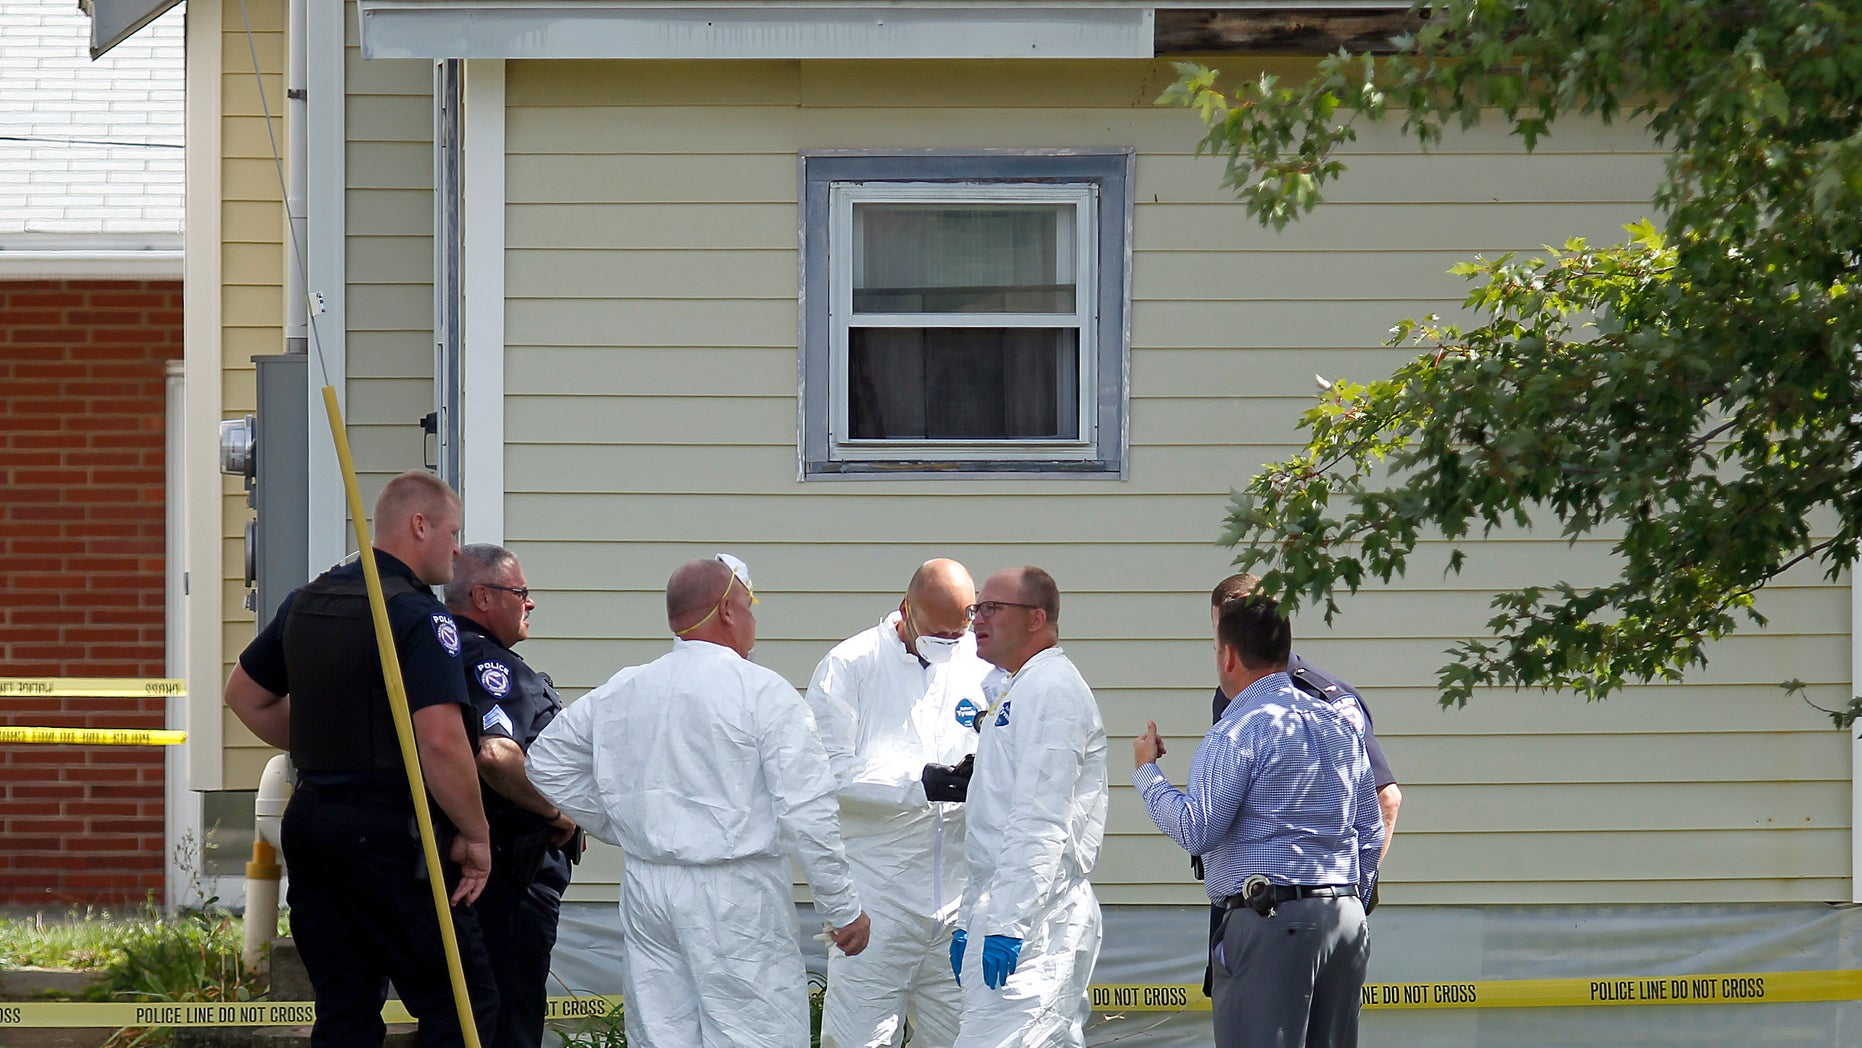 Authorities execute a search warrant on a home on Tuesday in Ashland, Ohio.